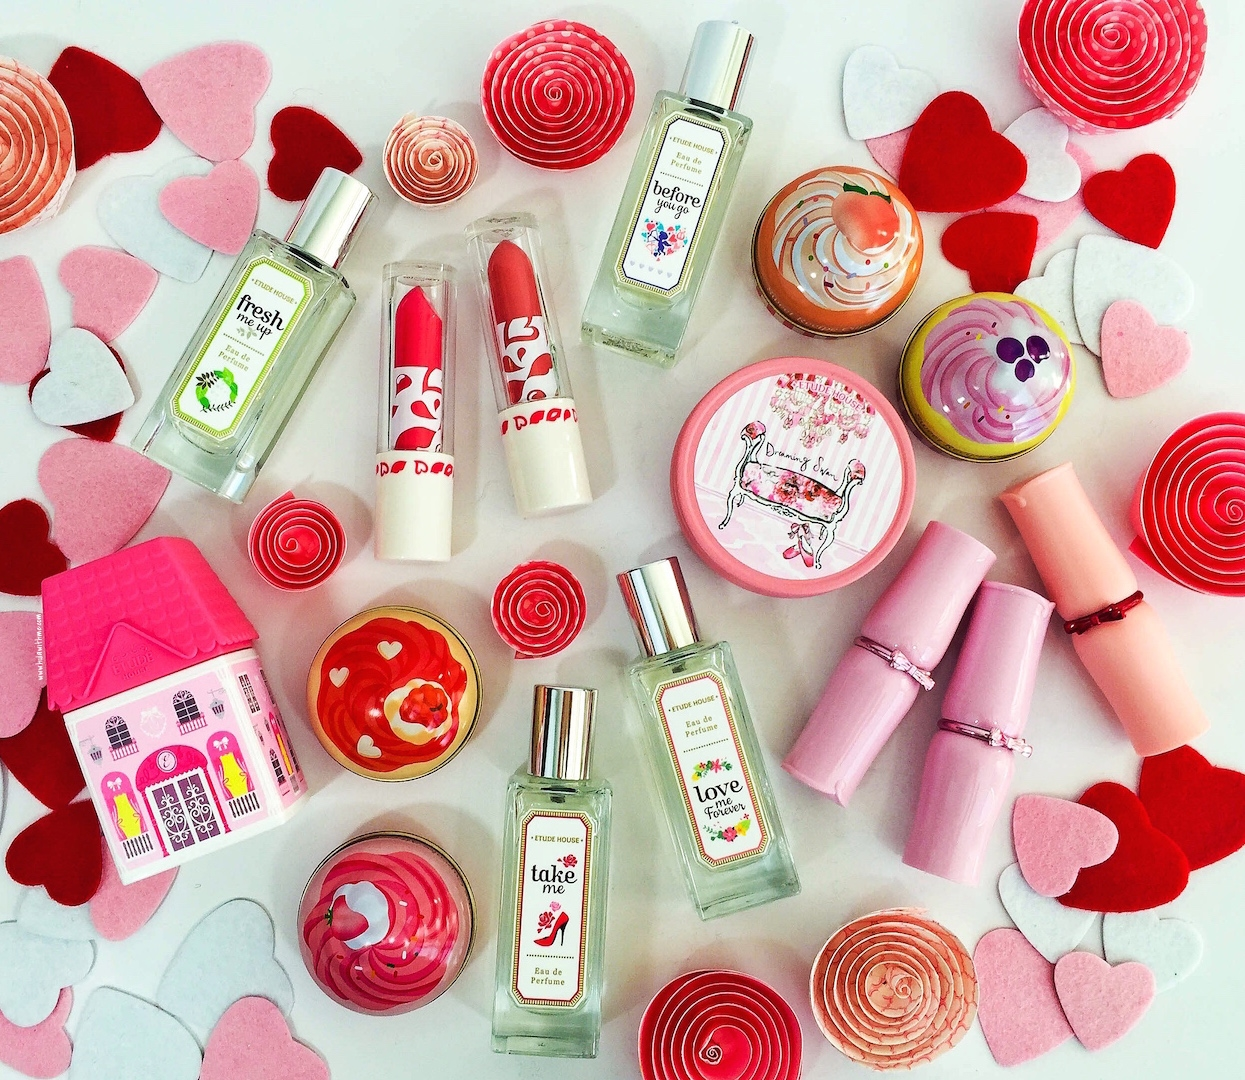 Sharing my Korean skincare finds at Etude House in Seoul, South Korea.